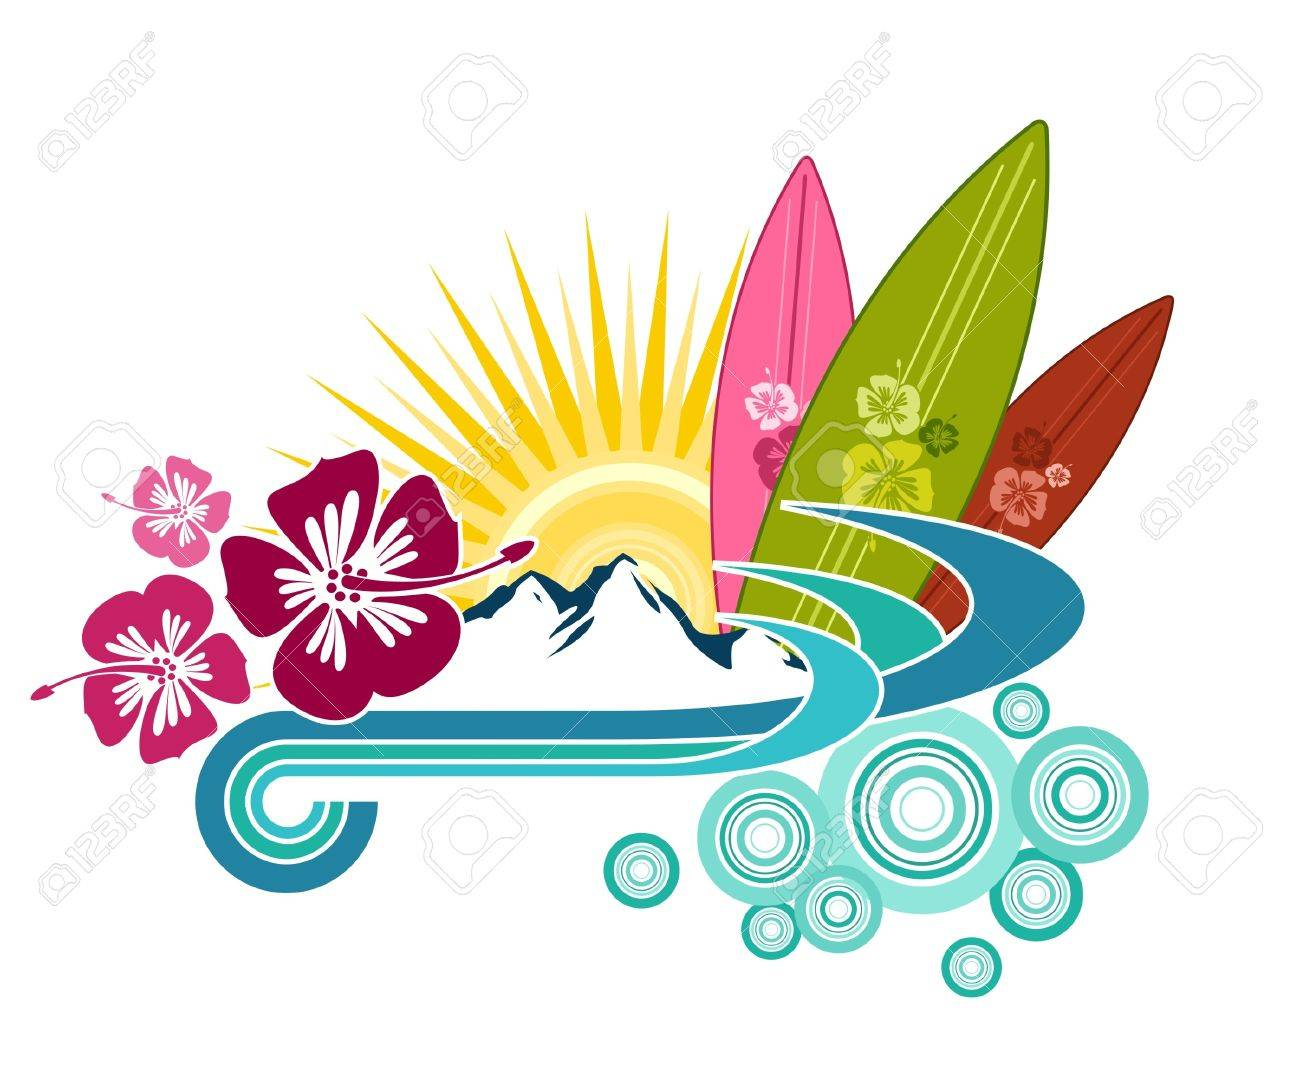 24,366 Hawaii Design Stock Vector Illustration And Royalty Free ...